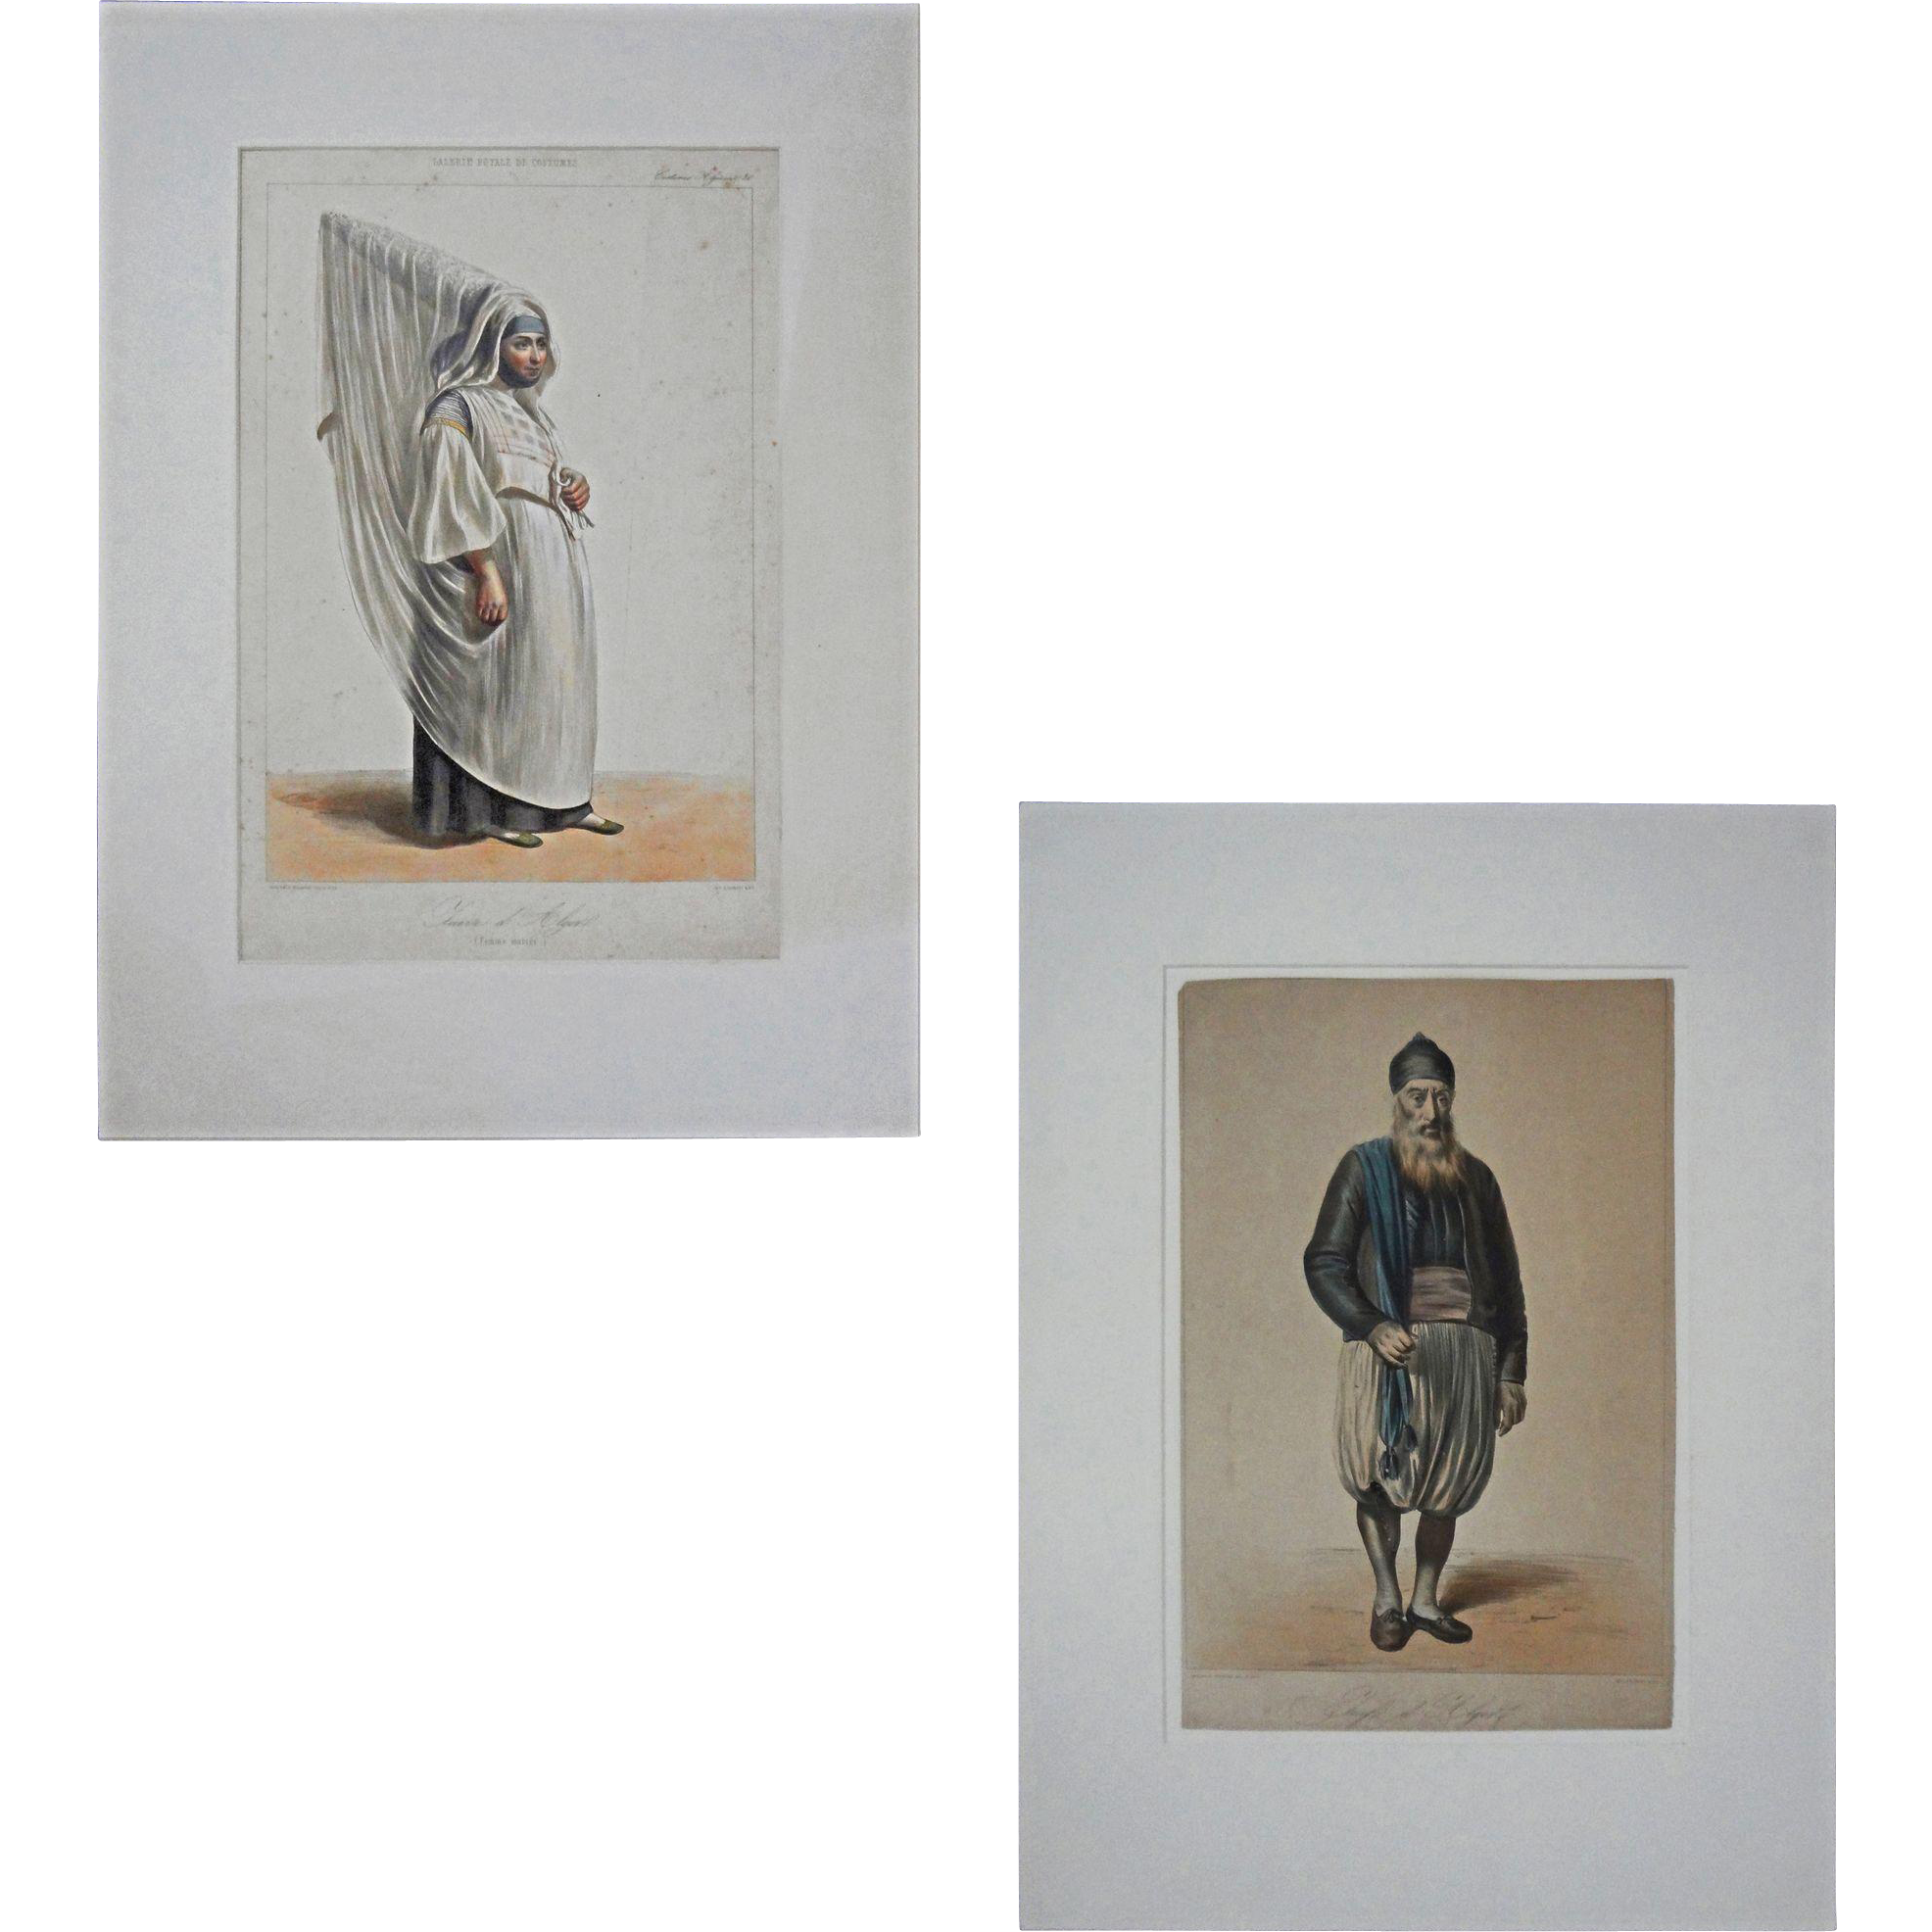 Pair Antique Juive d'Algier Lithographs Costume Couple - 1842-1848, France